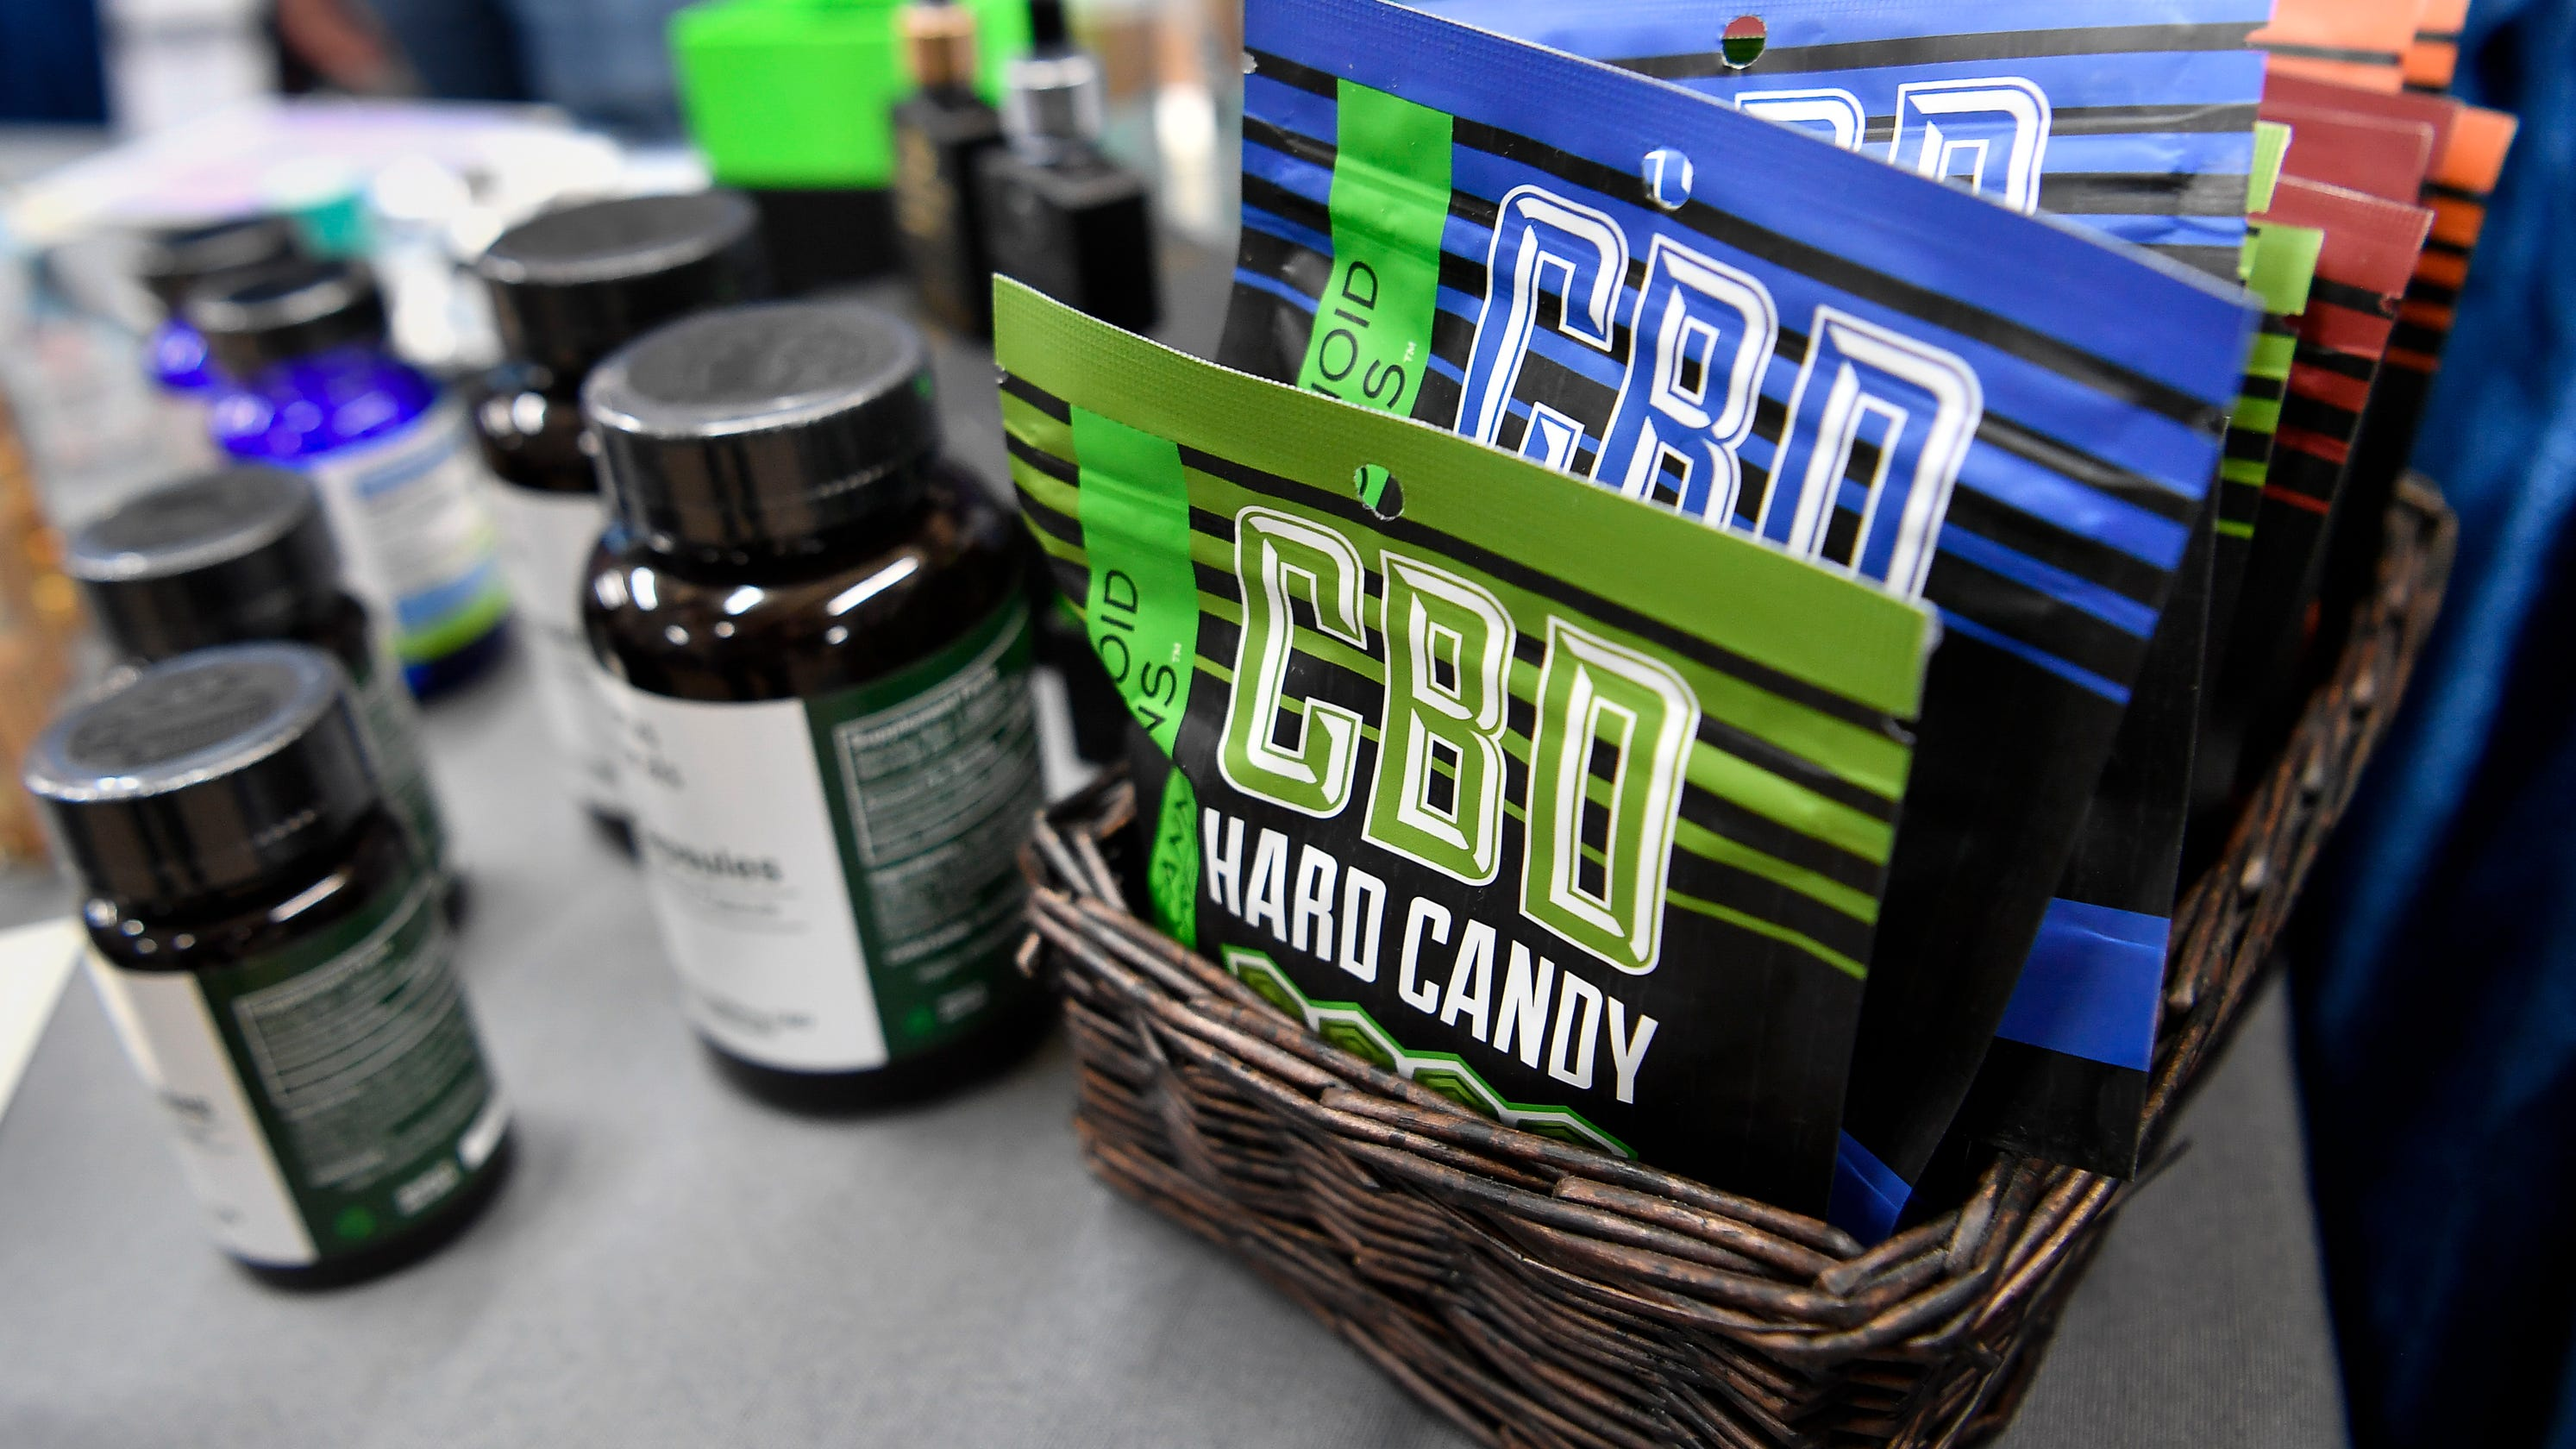 Can CBD oil help pain, anxiety? Here's what you need to know